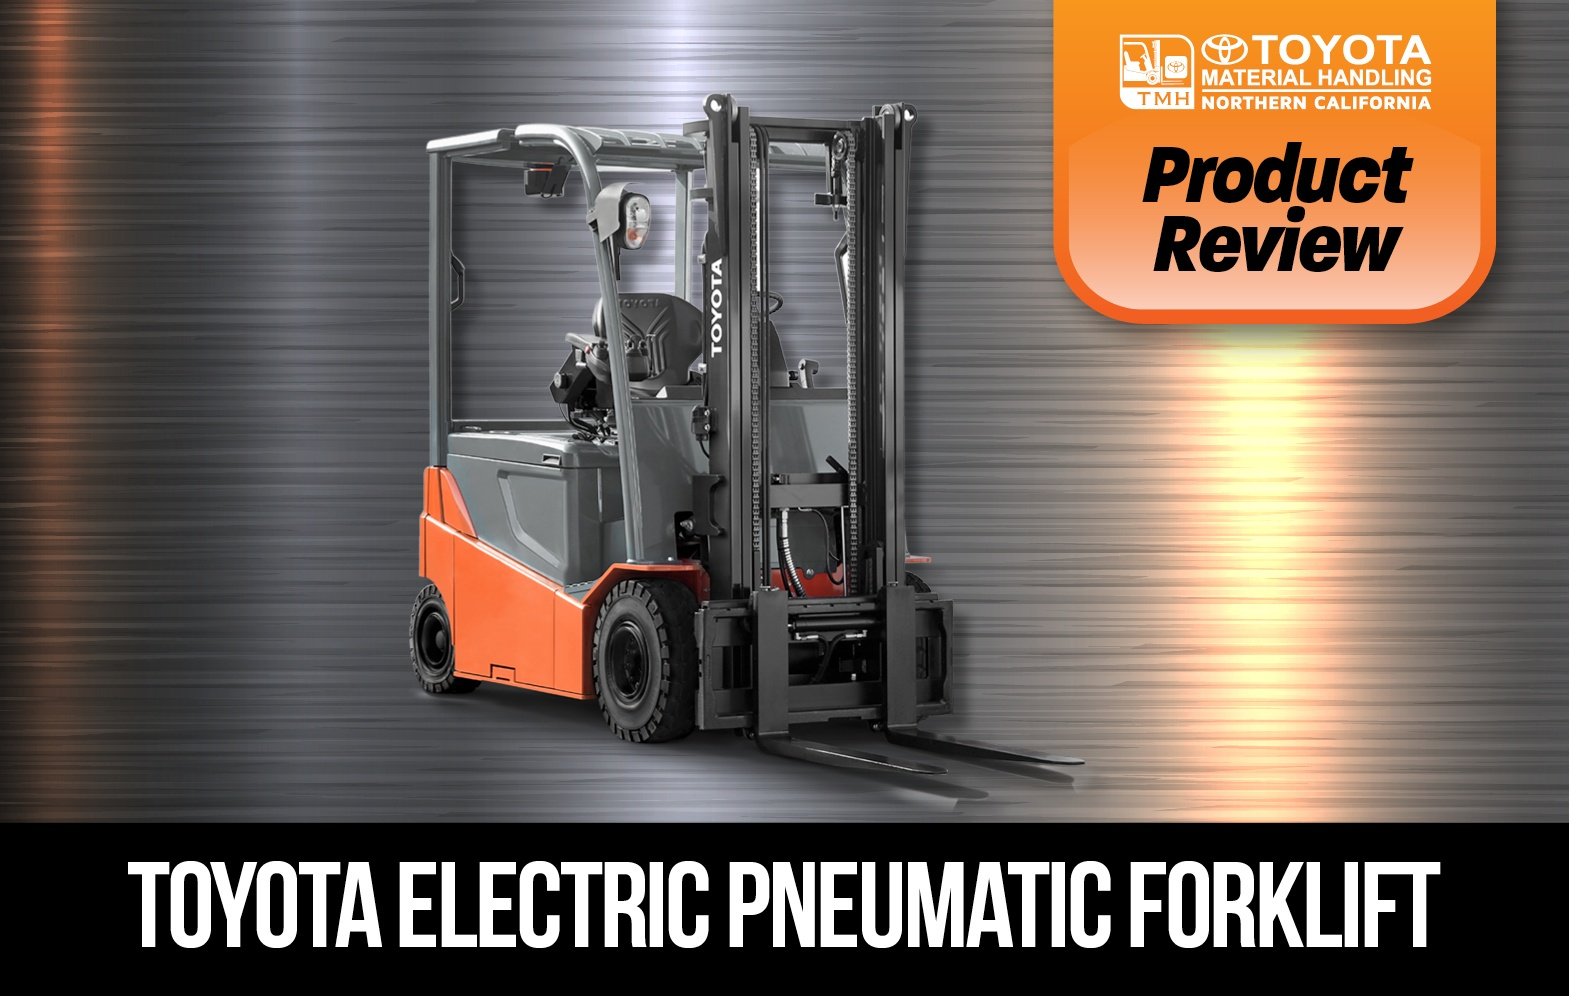 toyota electric pneumatic forklift review